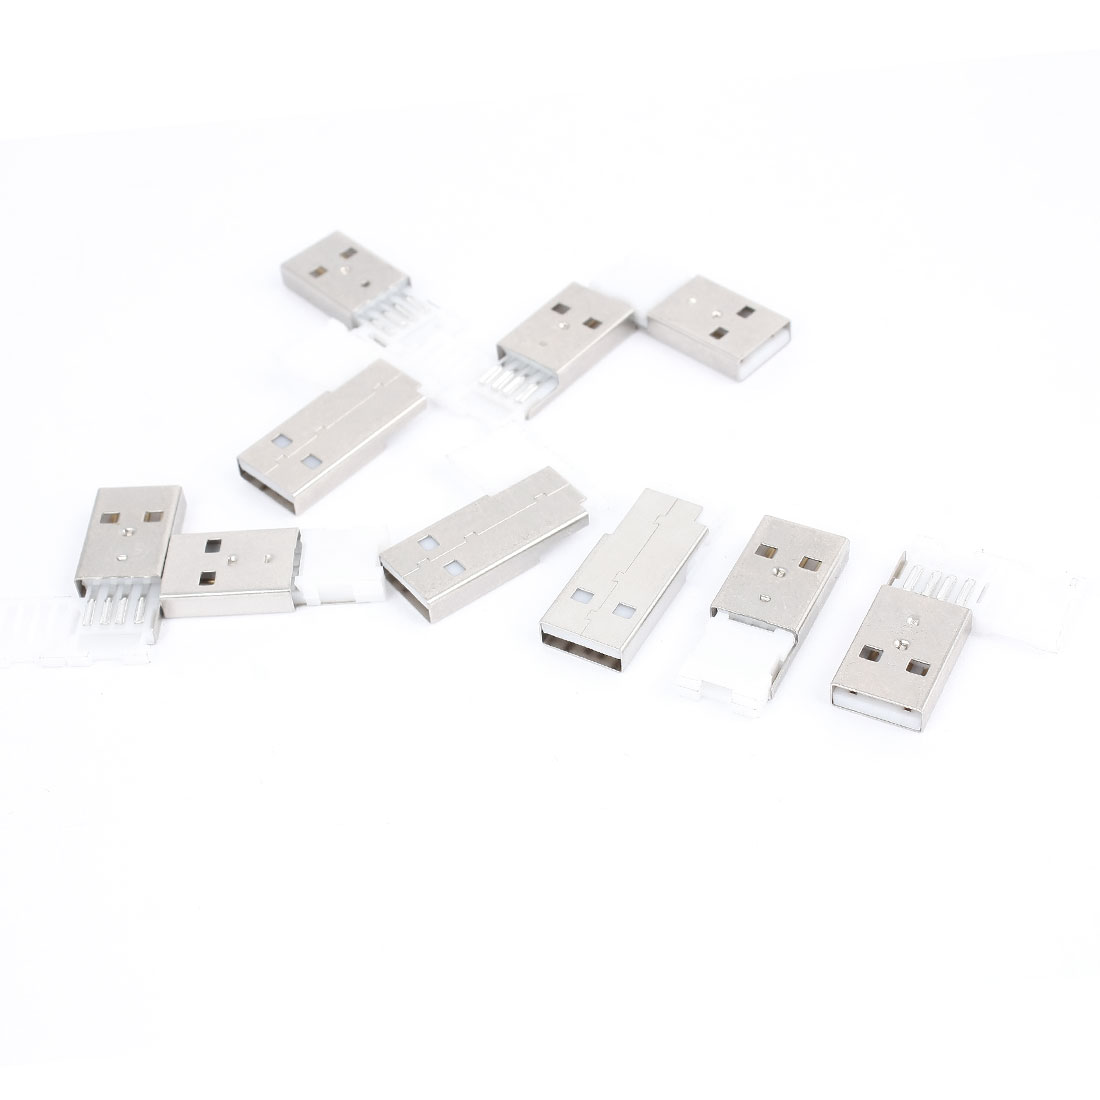 Silver Tone White USB 2.0 Type A Male Port Socket Cable Jack 10pcs